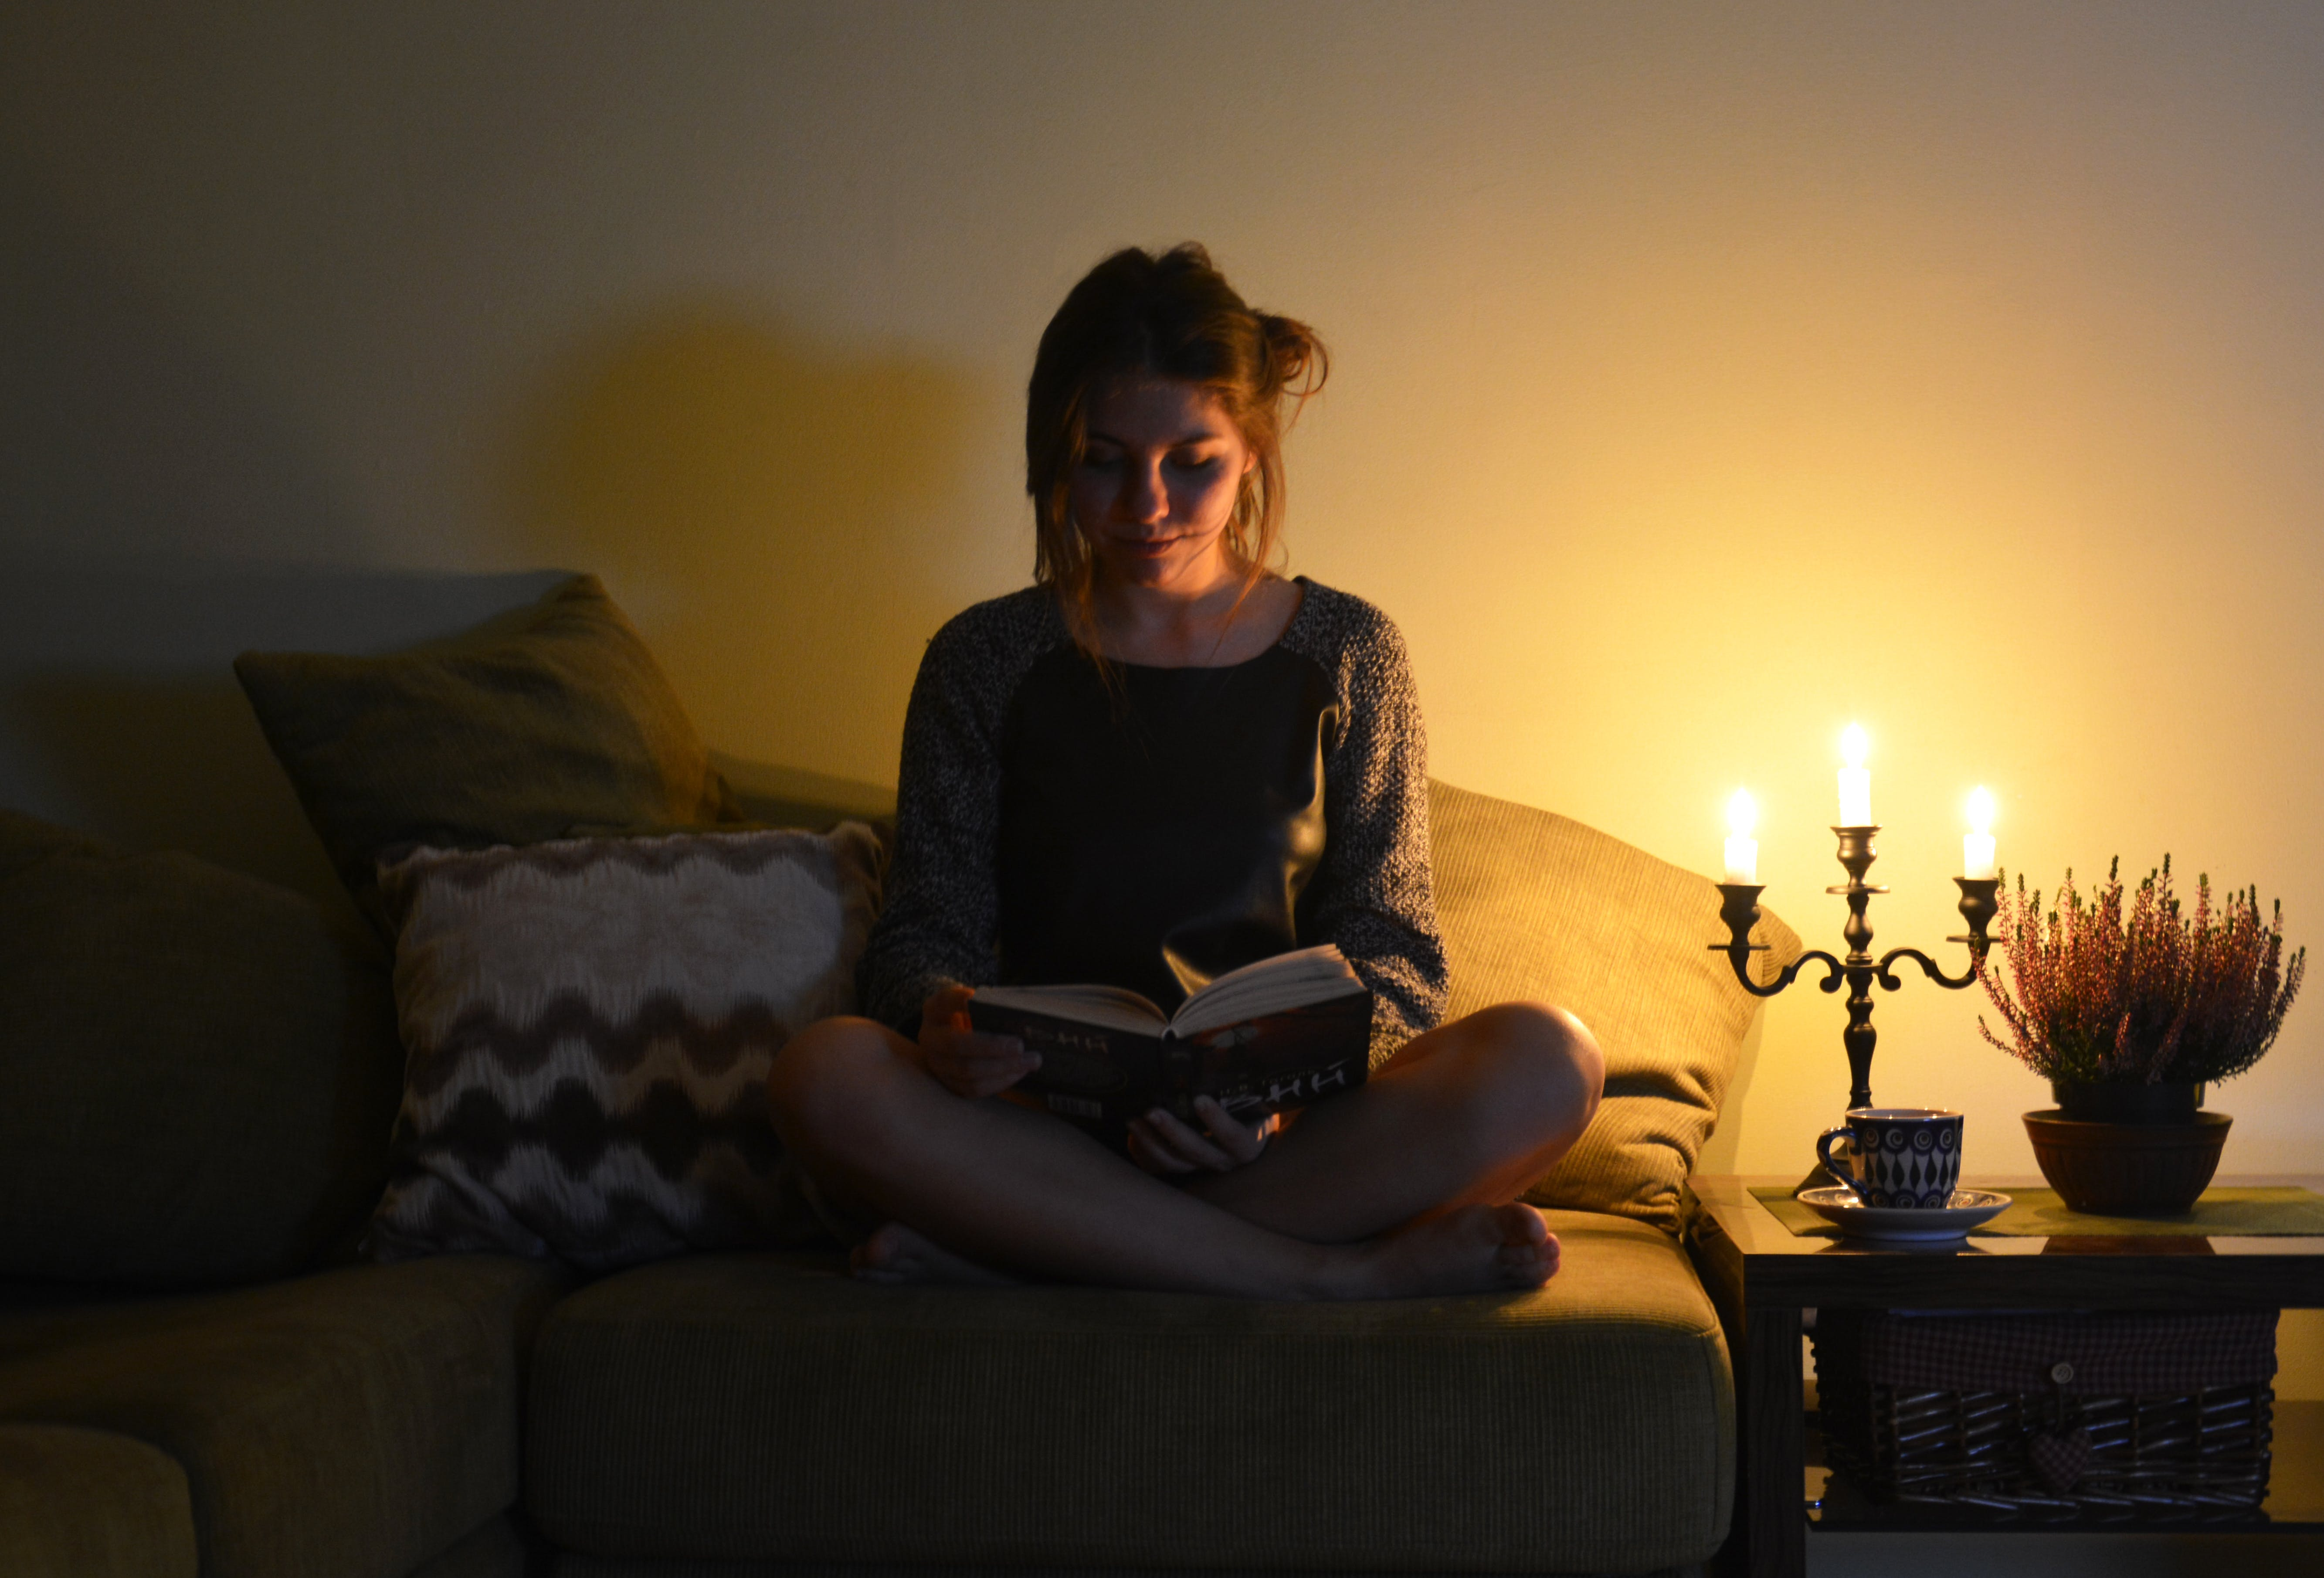 Free stock photo of book, cozy, home atmosphere, reading